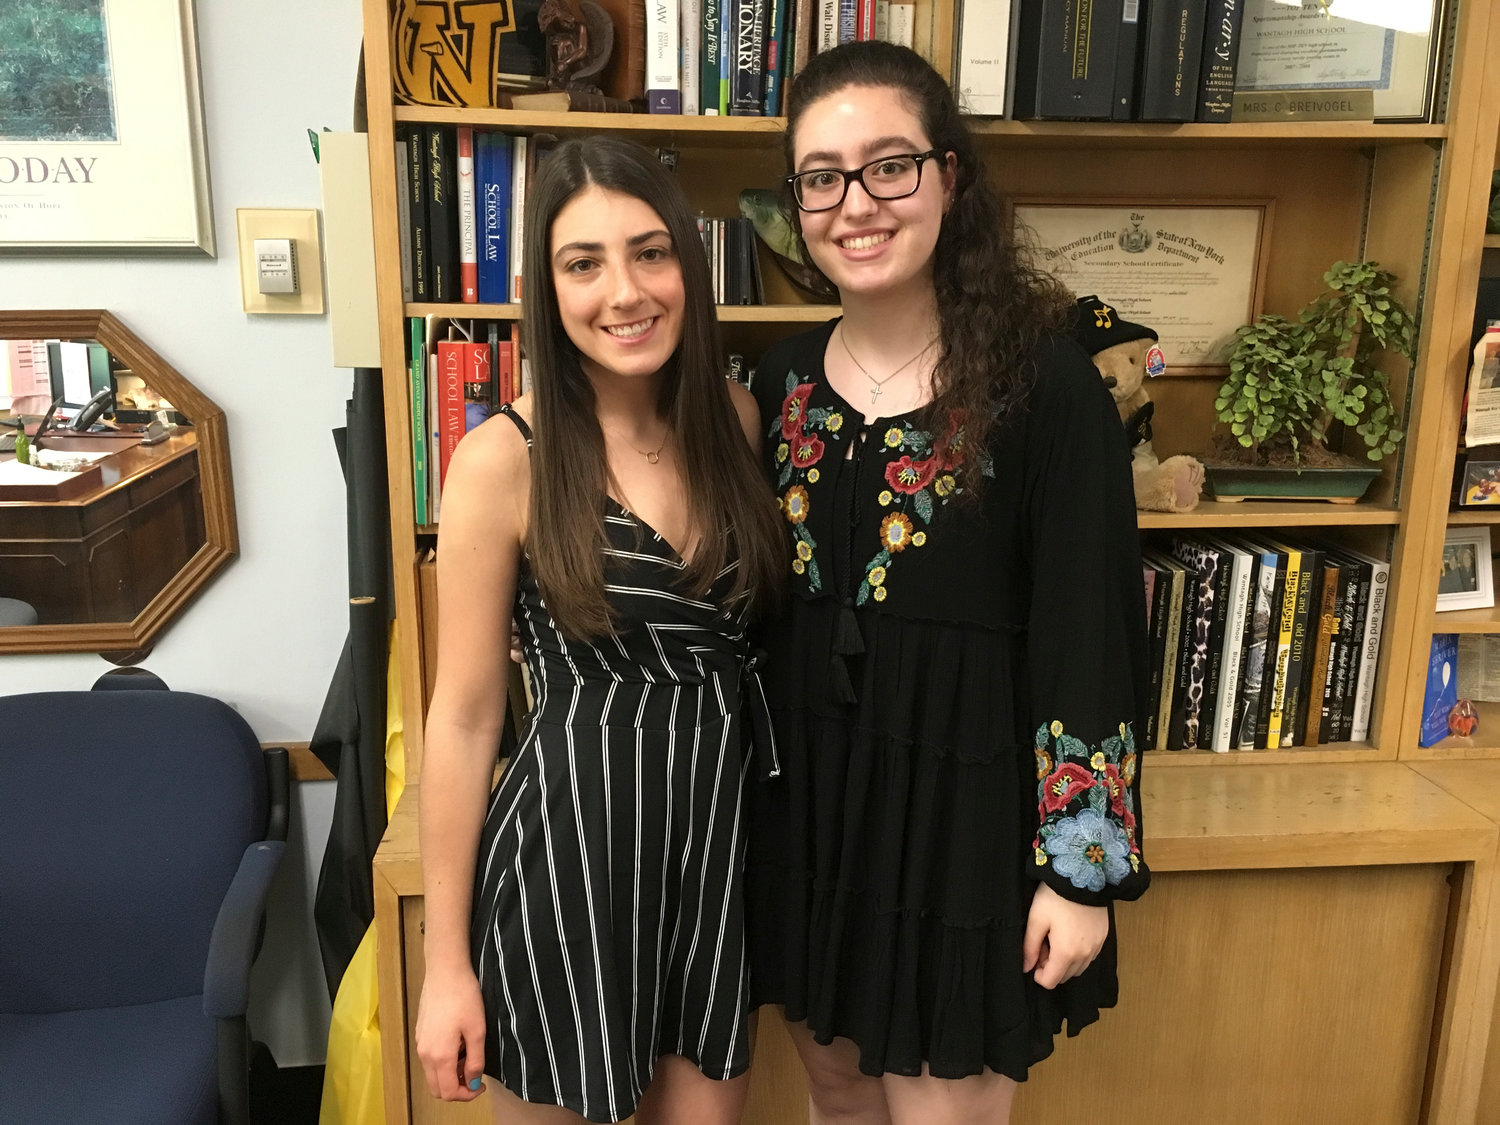 Seniors Samantha Minars, left, and Andriana Patmanidis are the Wantagh High School Class of 2019 valedictorian and salutatorian.